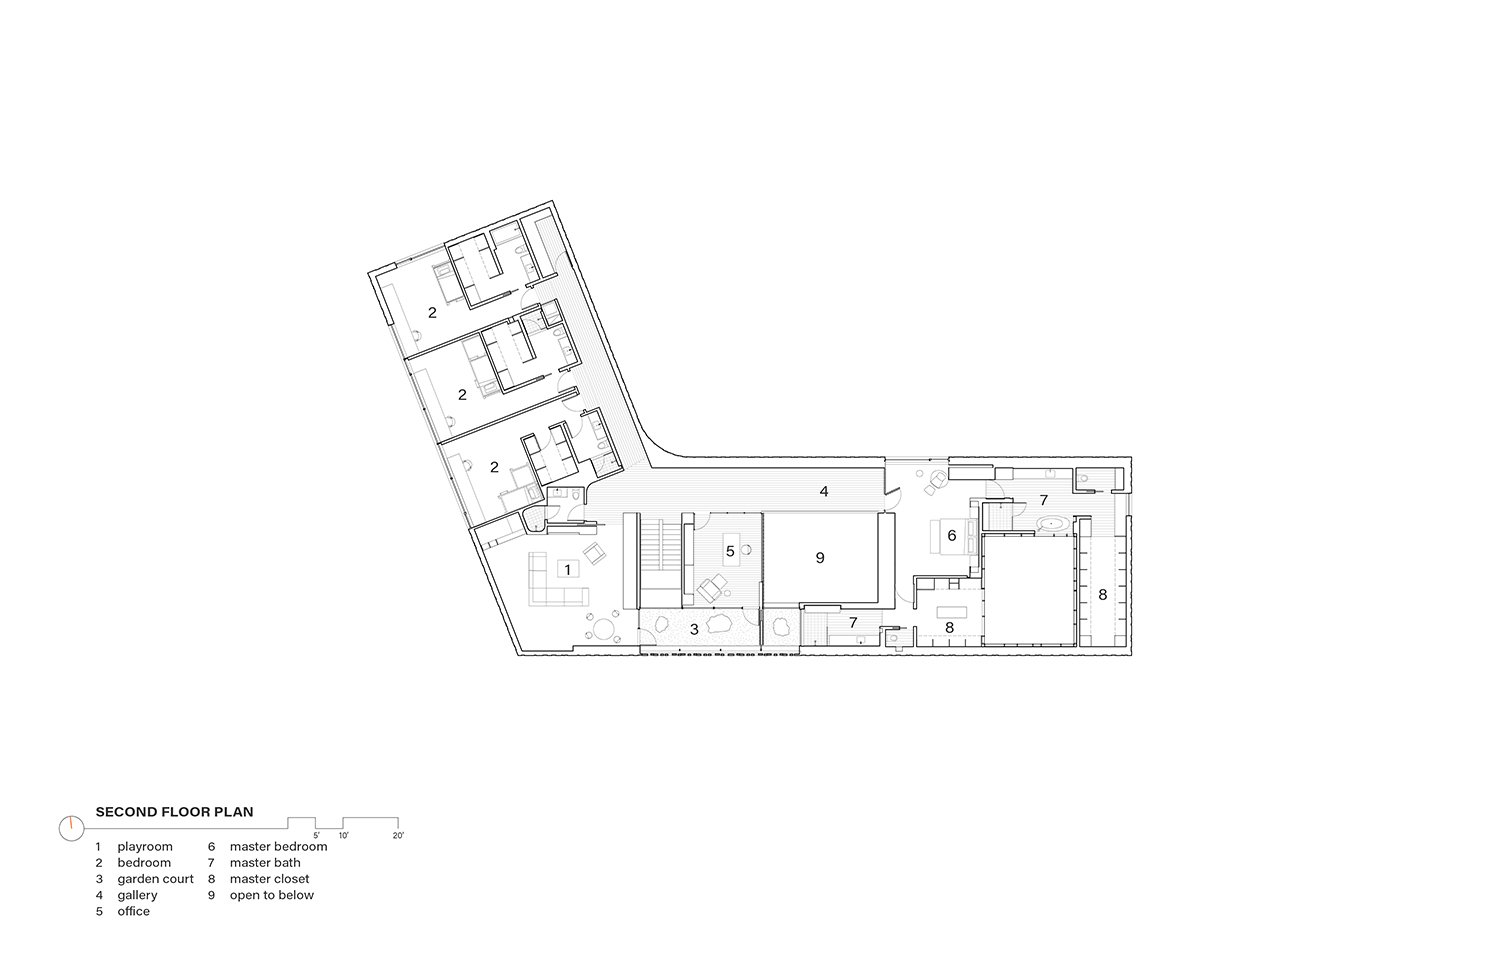 Second Floor Plan Drawing by Alterstudio Architecture}